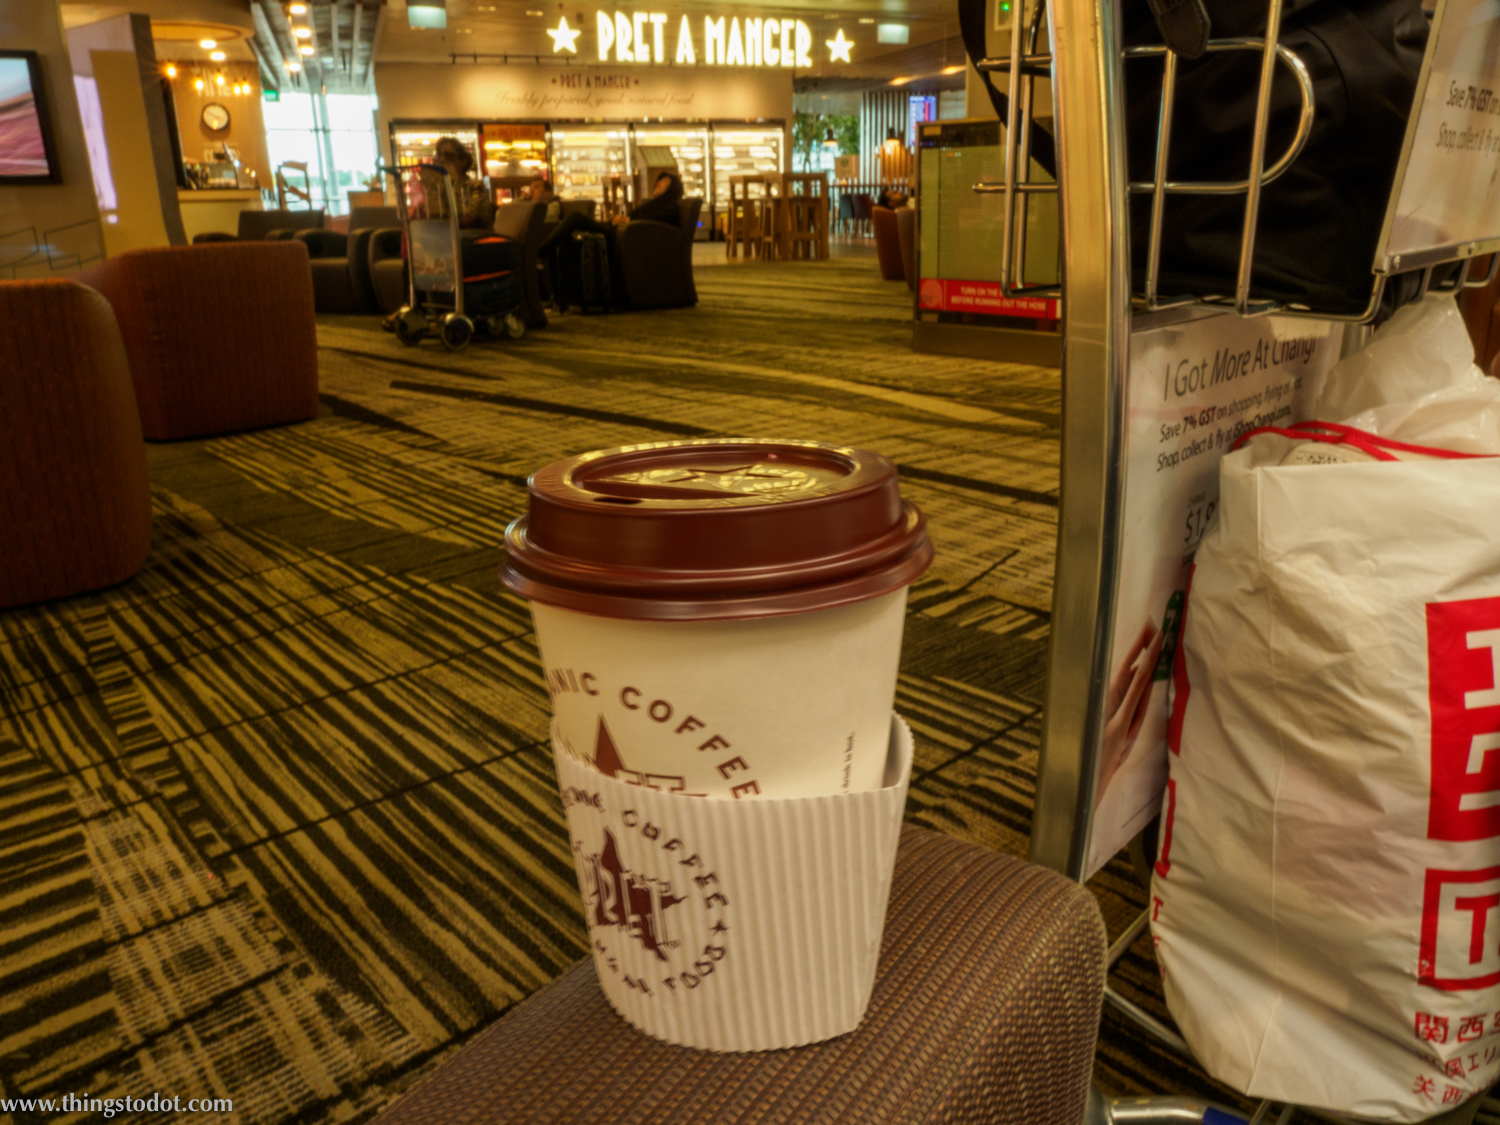 Pret A Manger, Singapore Changi Airport, Singapore. Image©thingstodot.com